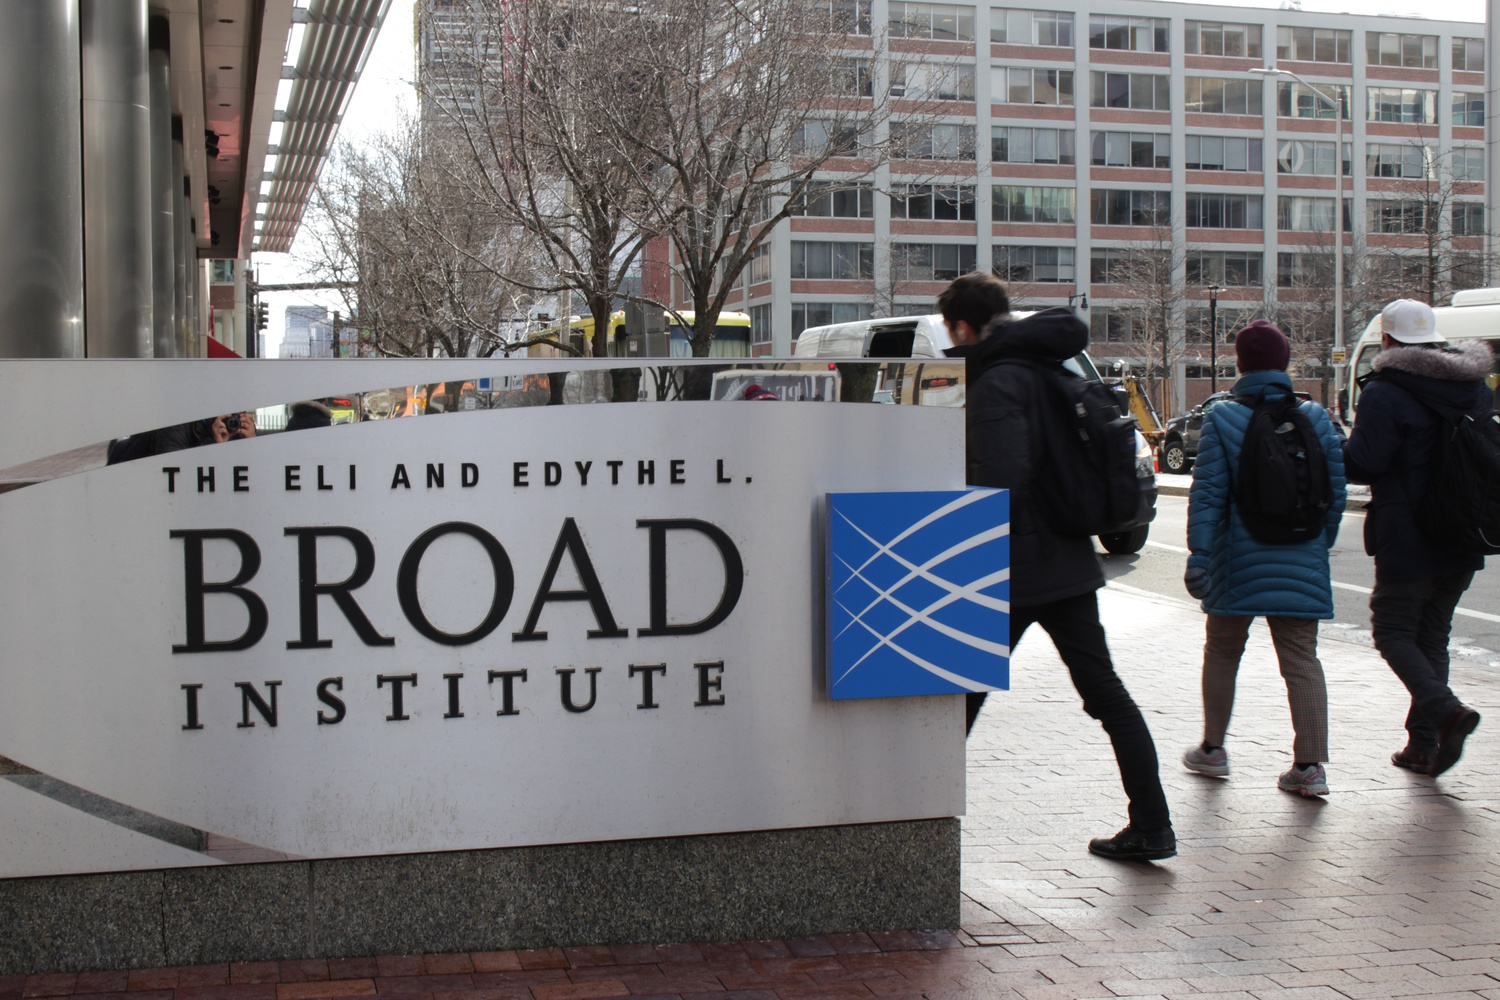 The Eli and Edythe L. Broad Institute of MIT and Harvard is a biomedical research center located in Cambridge's Kendall Square.